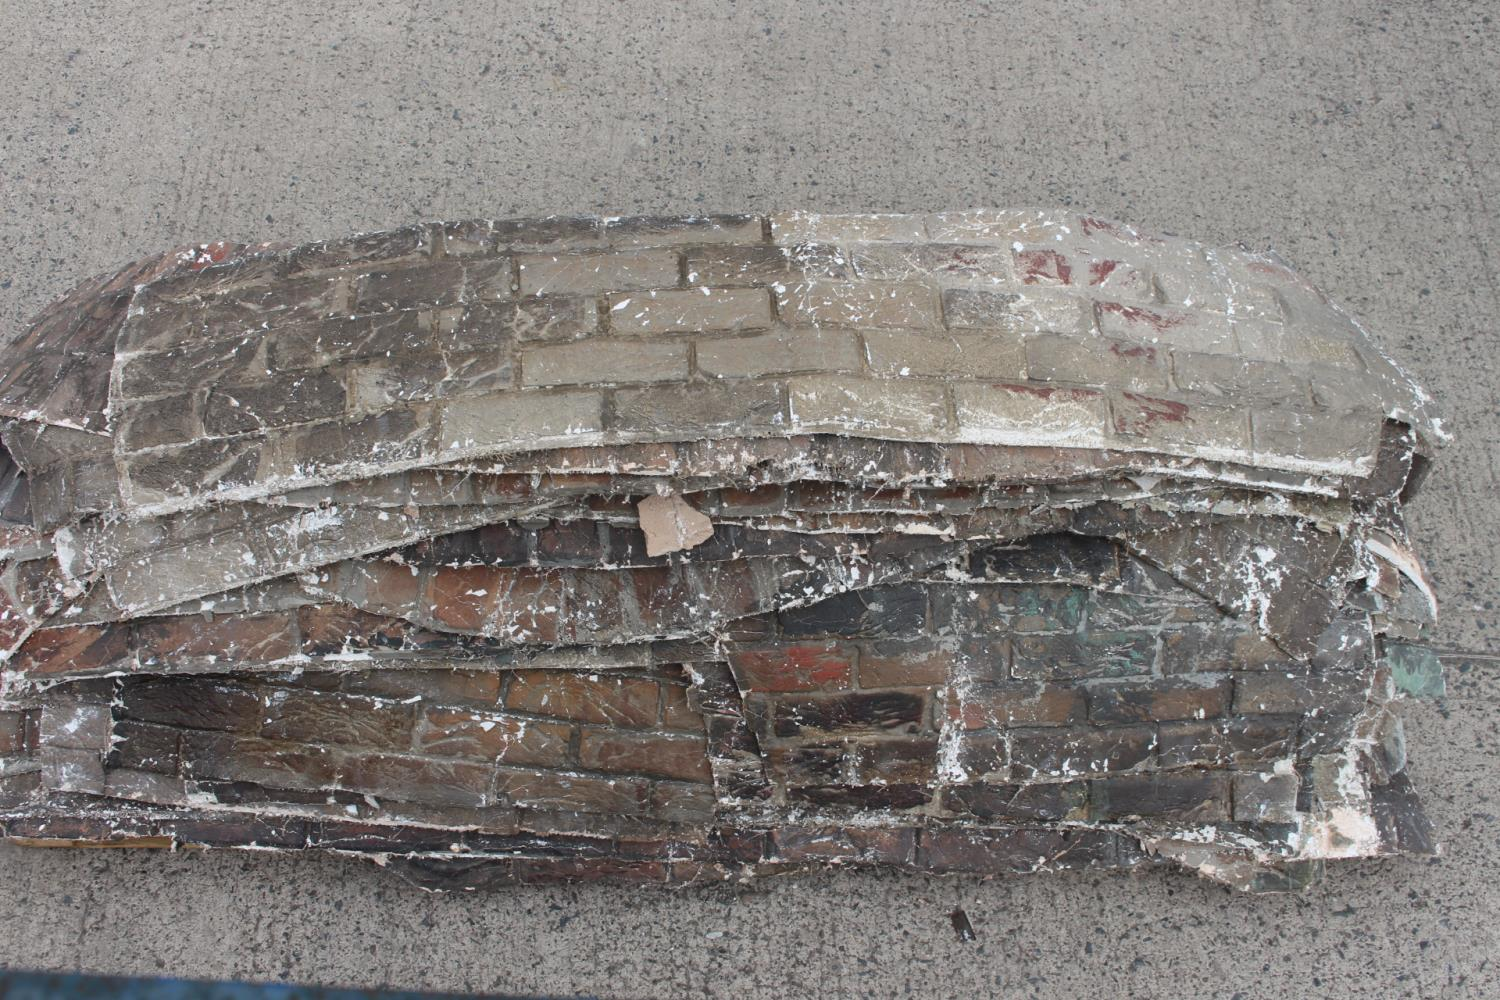 Two pallets of fibre glass plaster wall sections. - Image 2 of 5